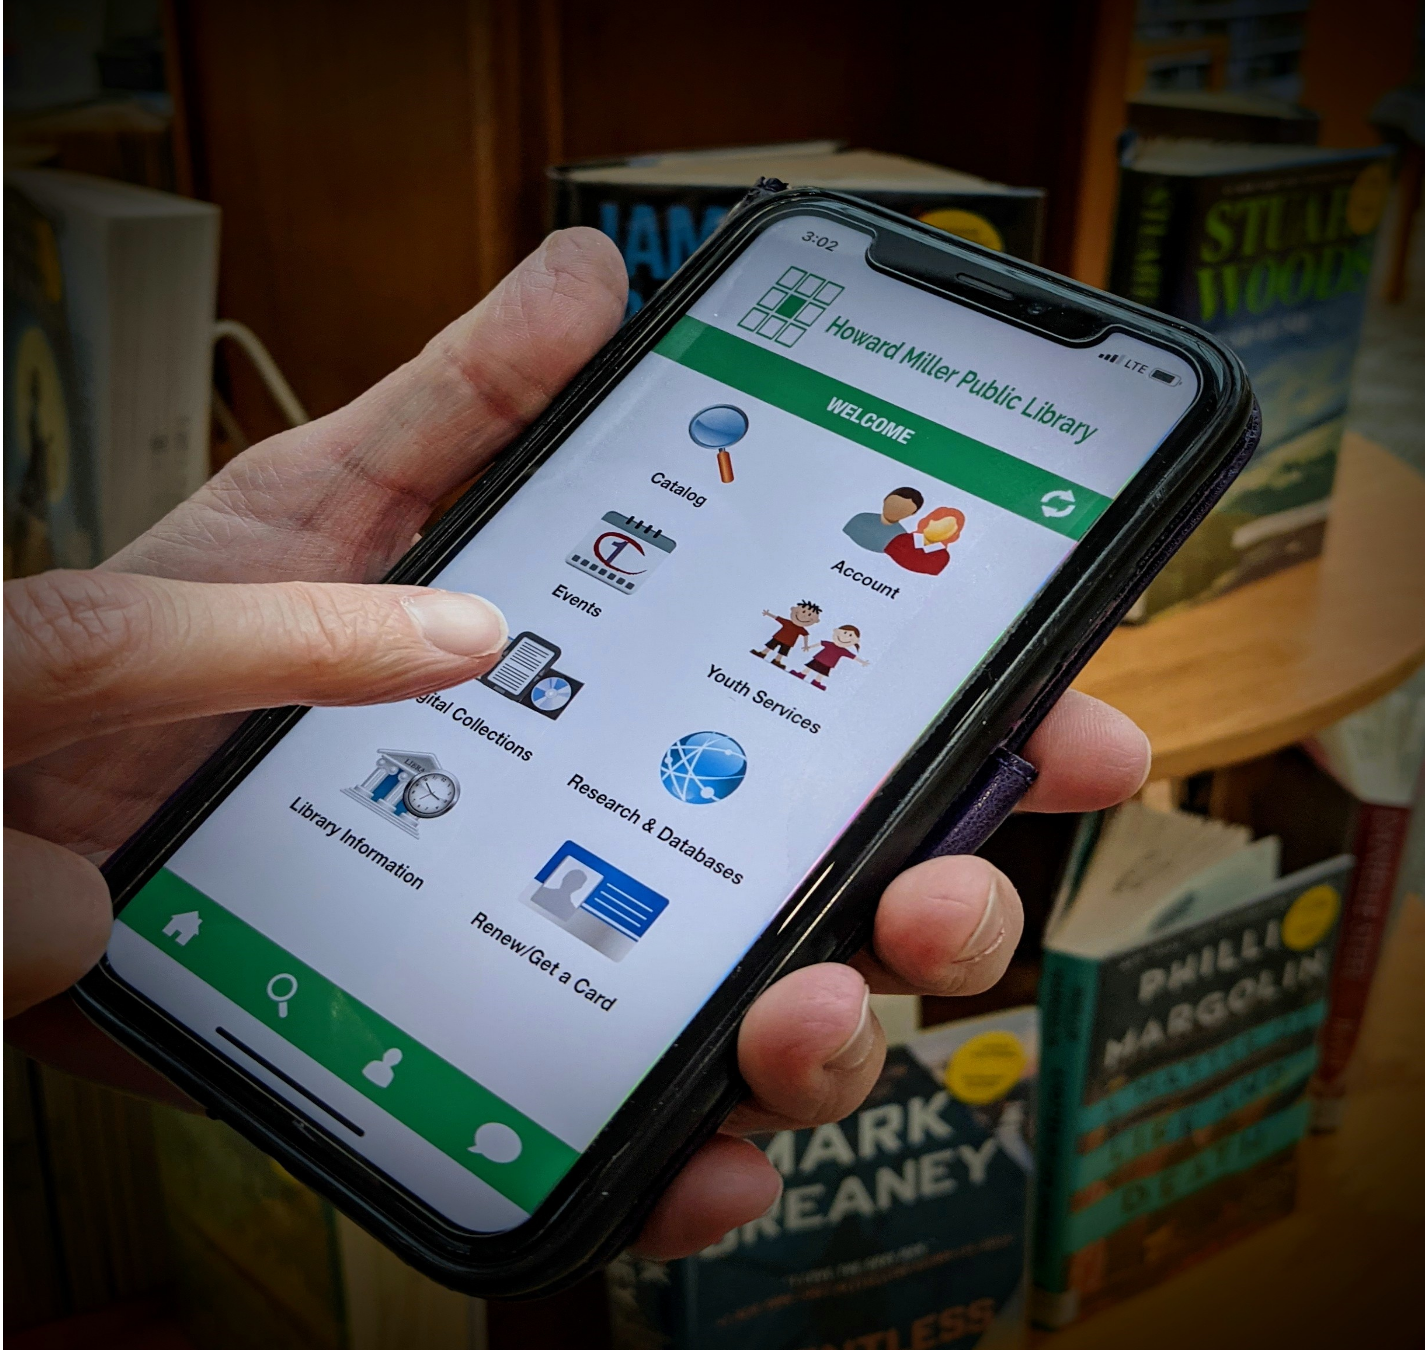 mylibrary app on a phone in front of books at the library